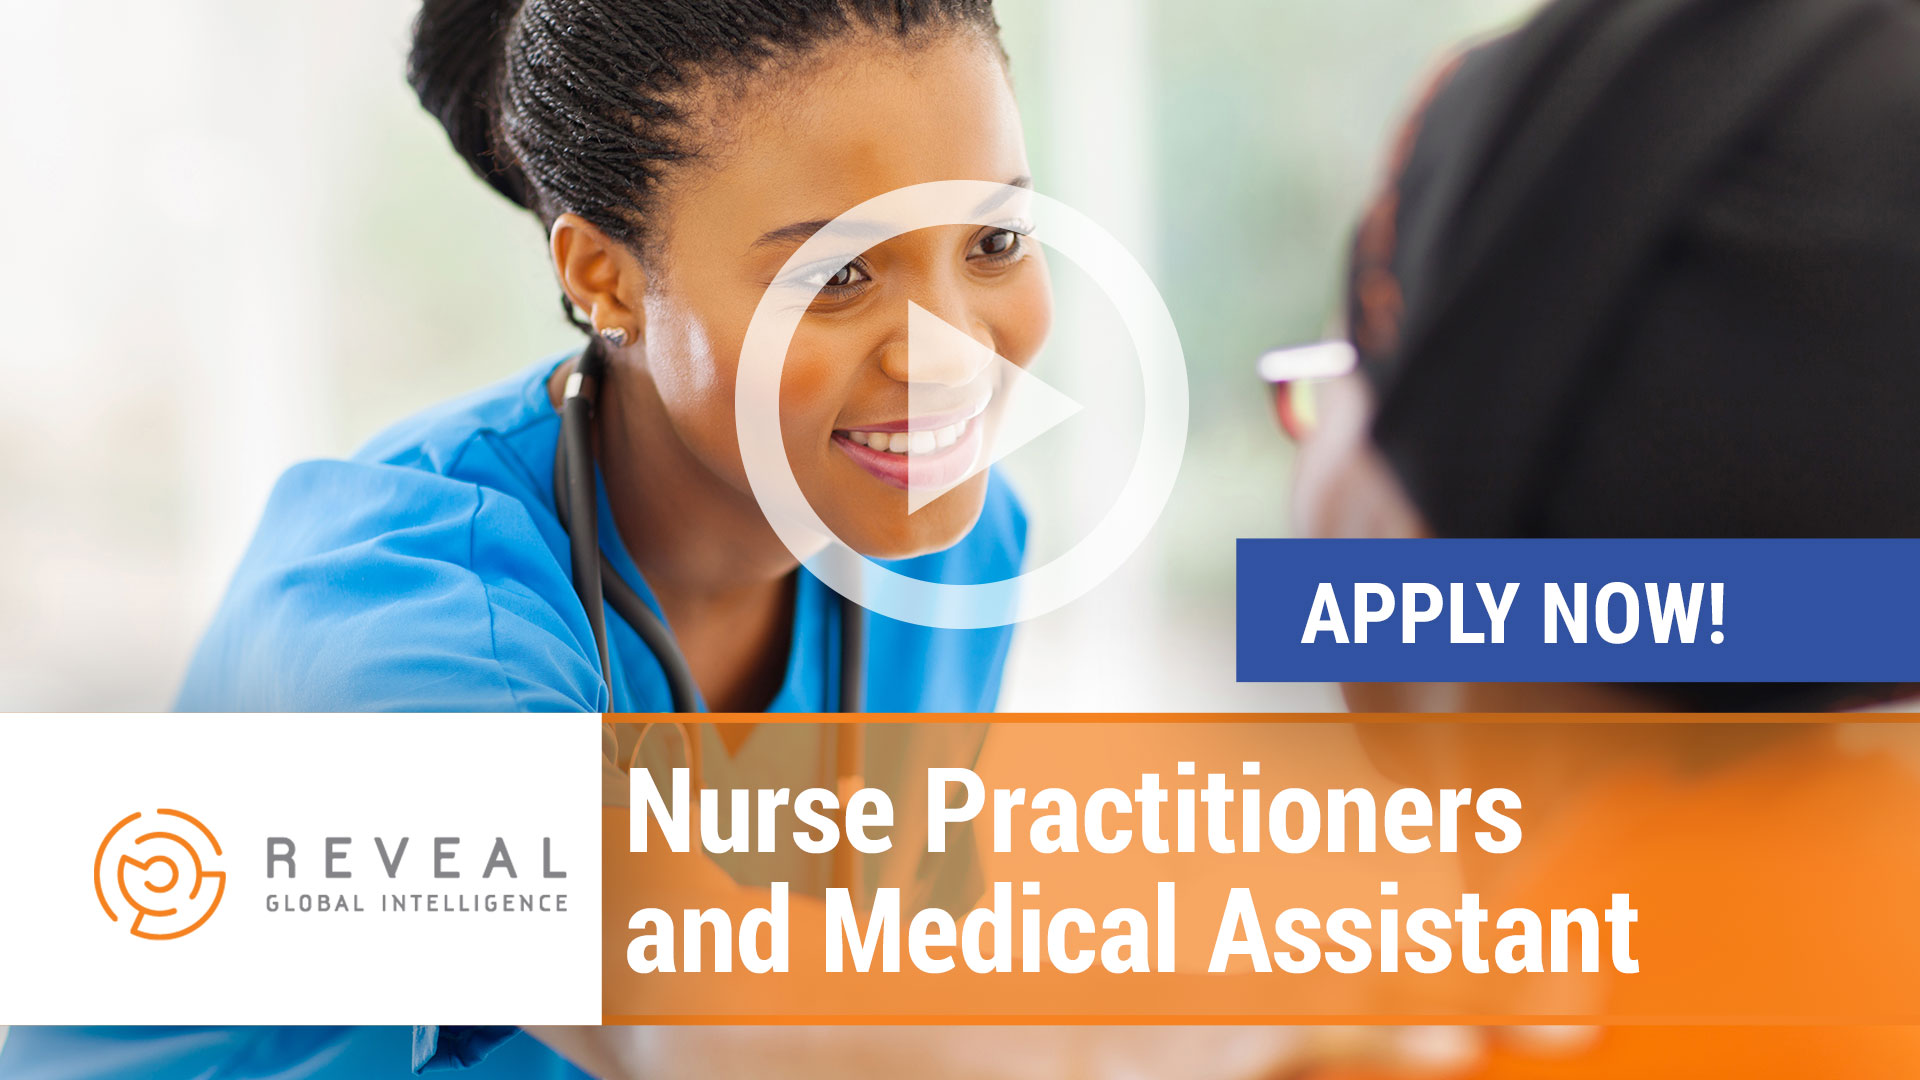 Watch our careers video for available job opening Nurse Practitioner in Cary, NC, USA